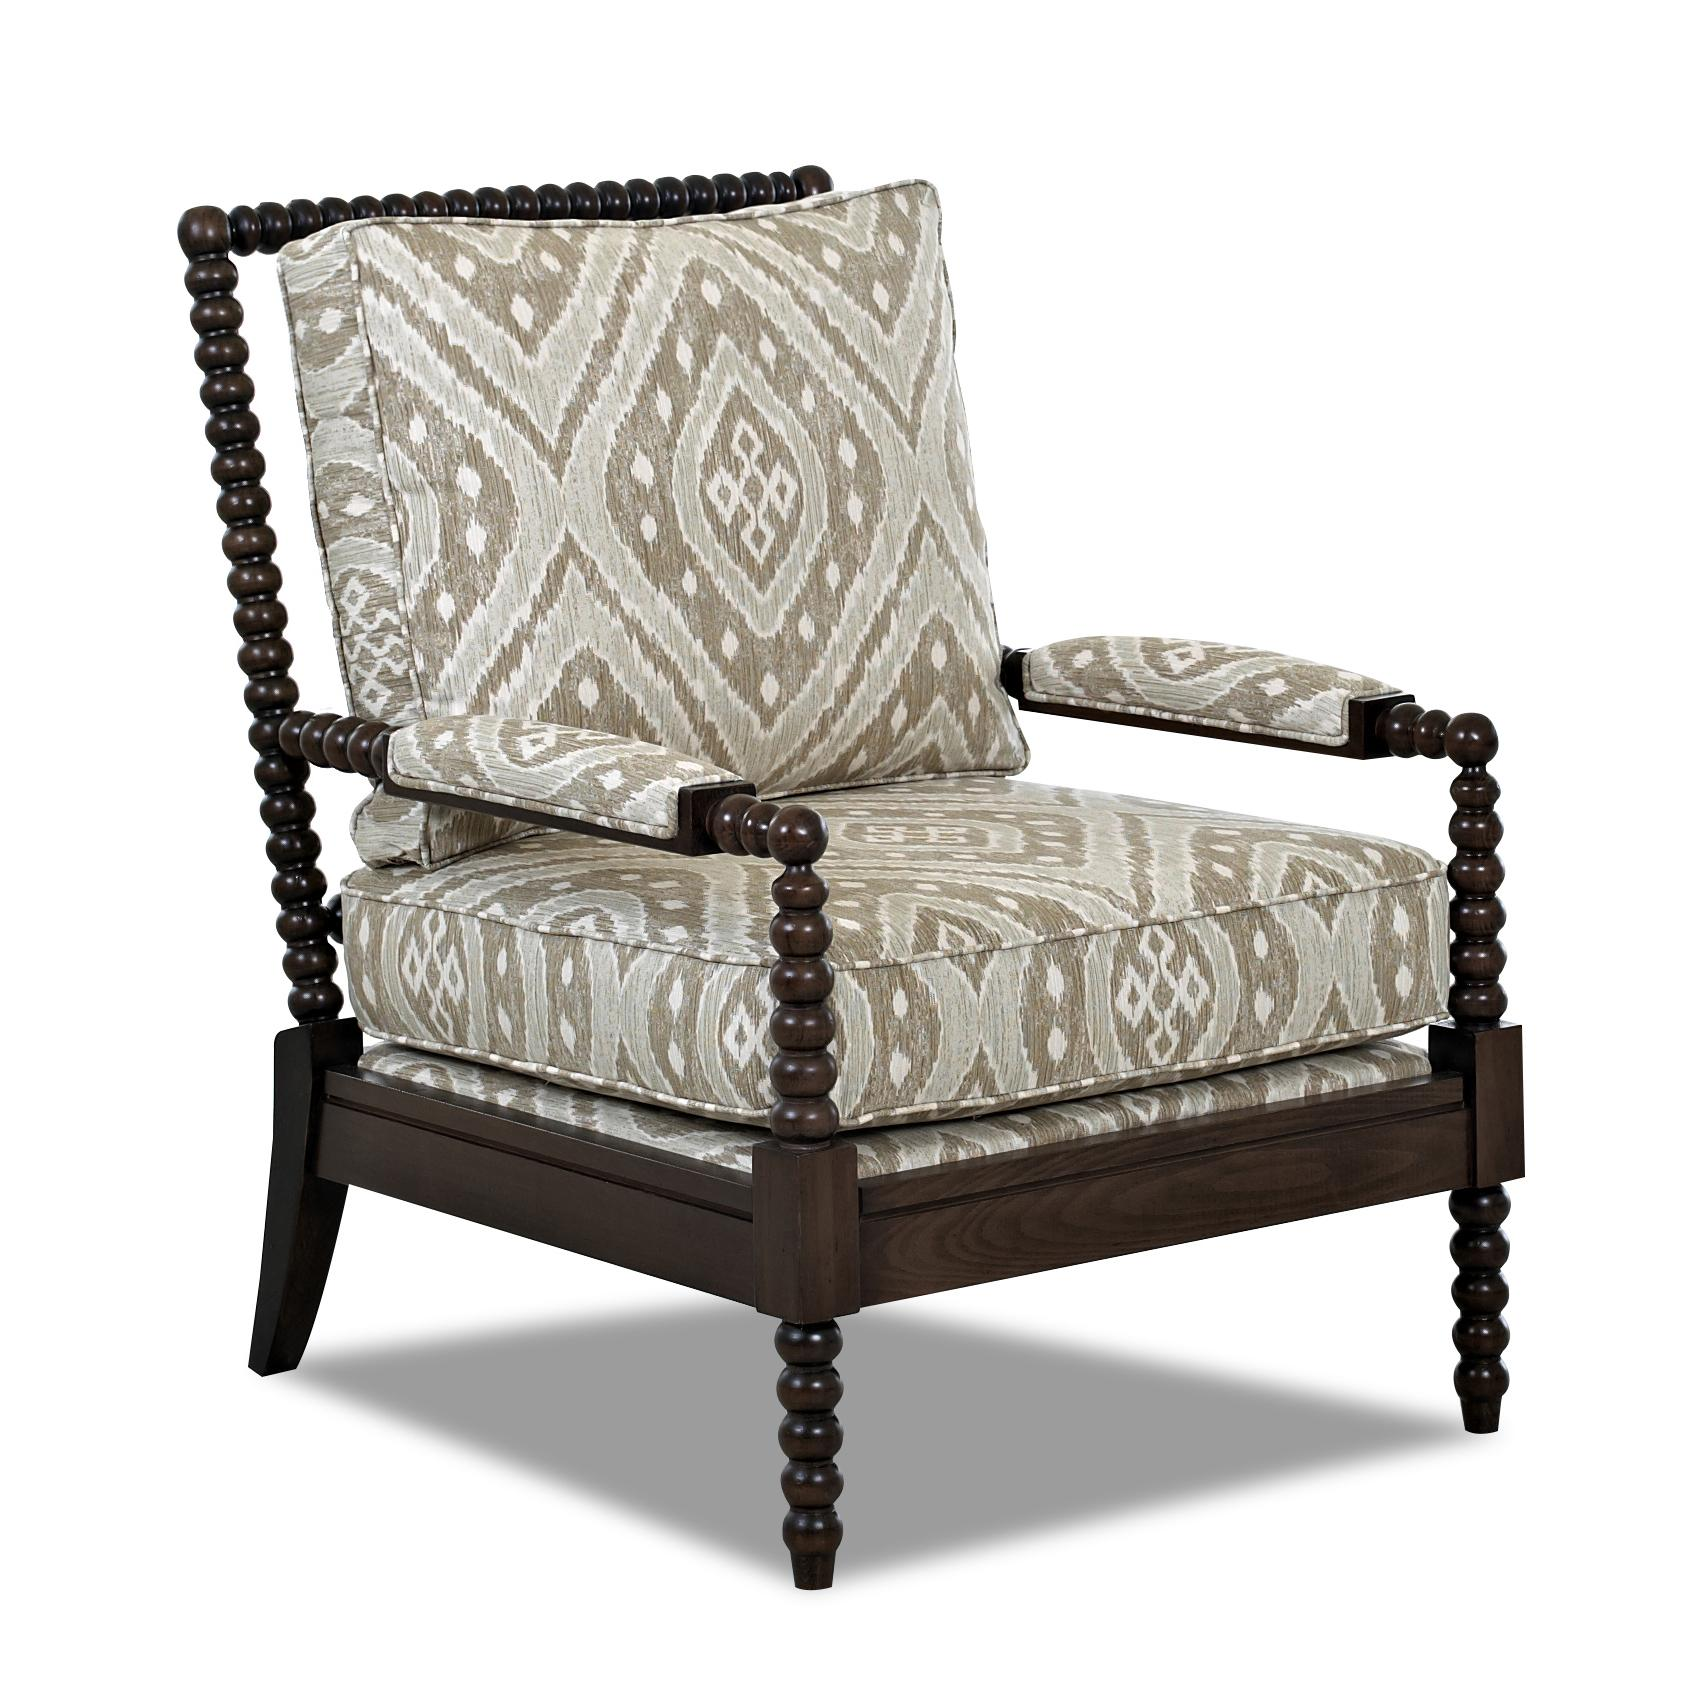 spool chair for sale shower chairs and stools ethan allen 100 rand wing traditional